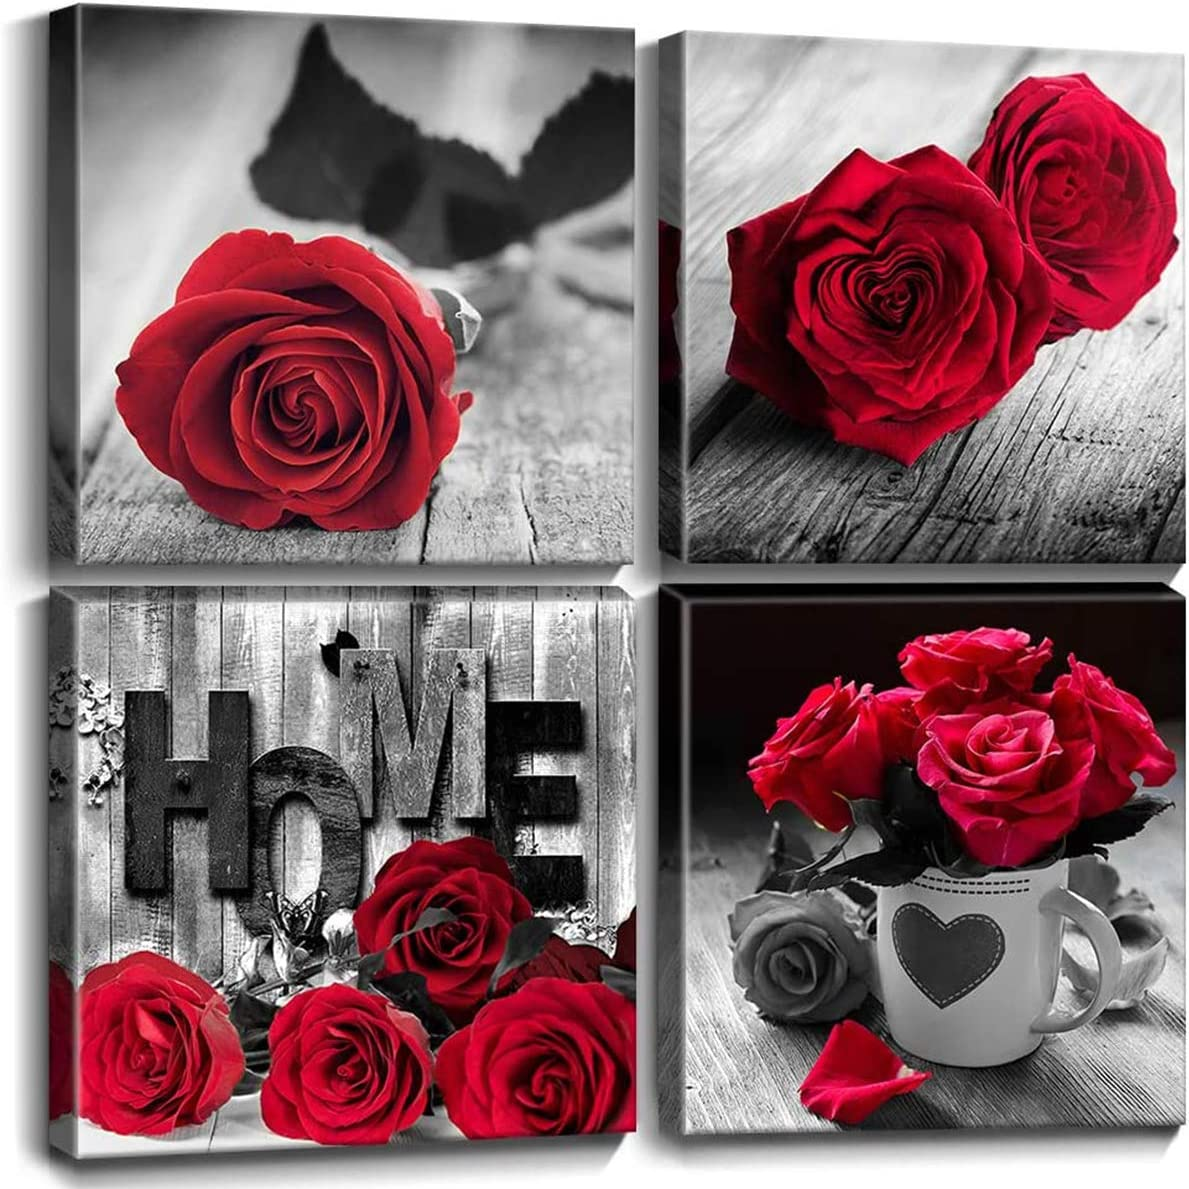 Amazon Com Red Canvas Wall Art Black And White Bedroom Decor Bathroom Accessories Rose Flower Prints Picture Aesthetic Home Decoration 16 4 Pcs Sets Floral Poster Painting Modern Living Room Artwork Girl Gift